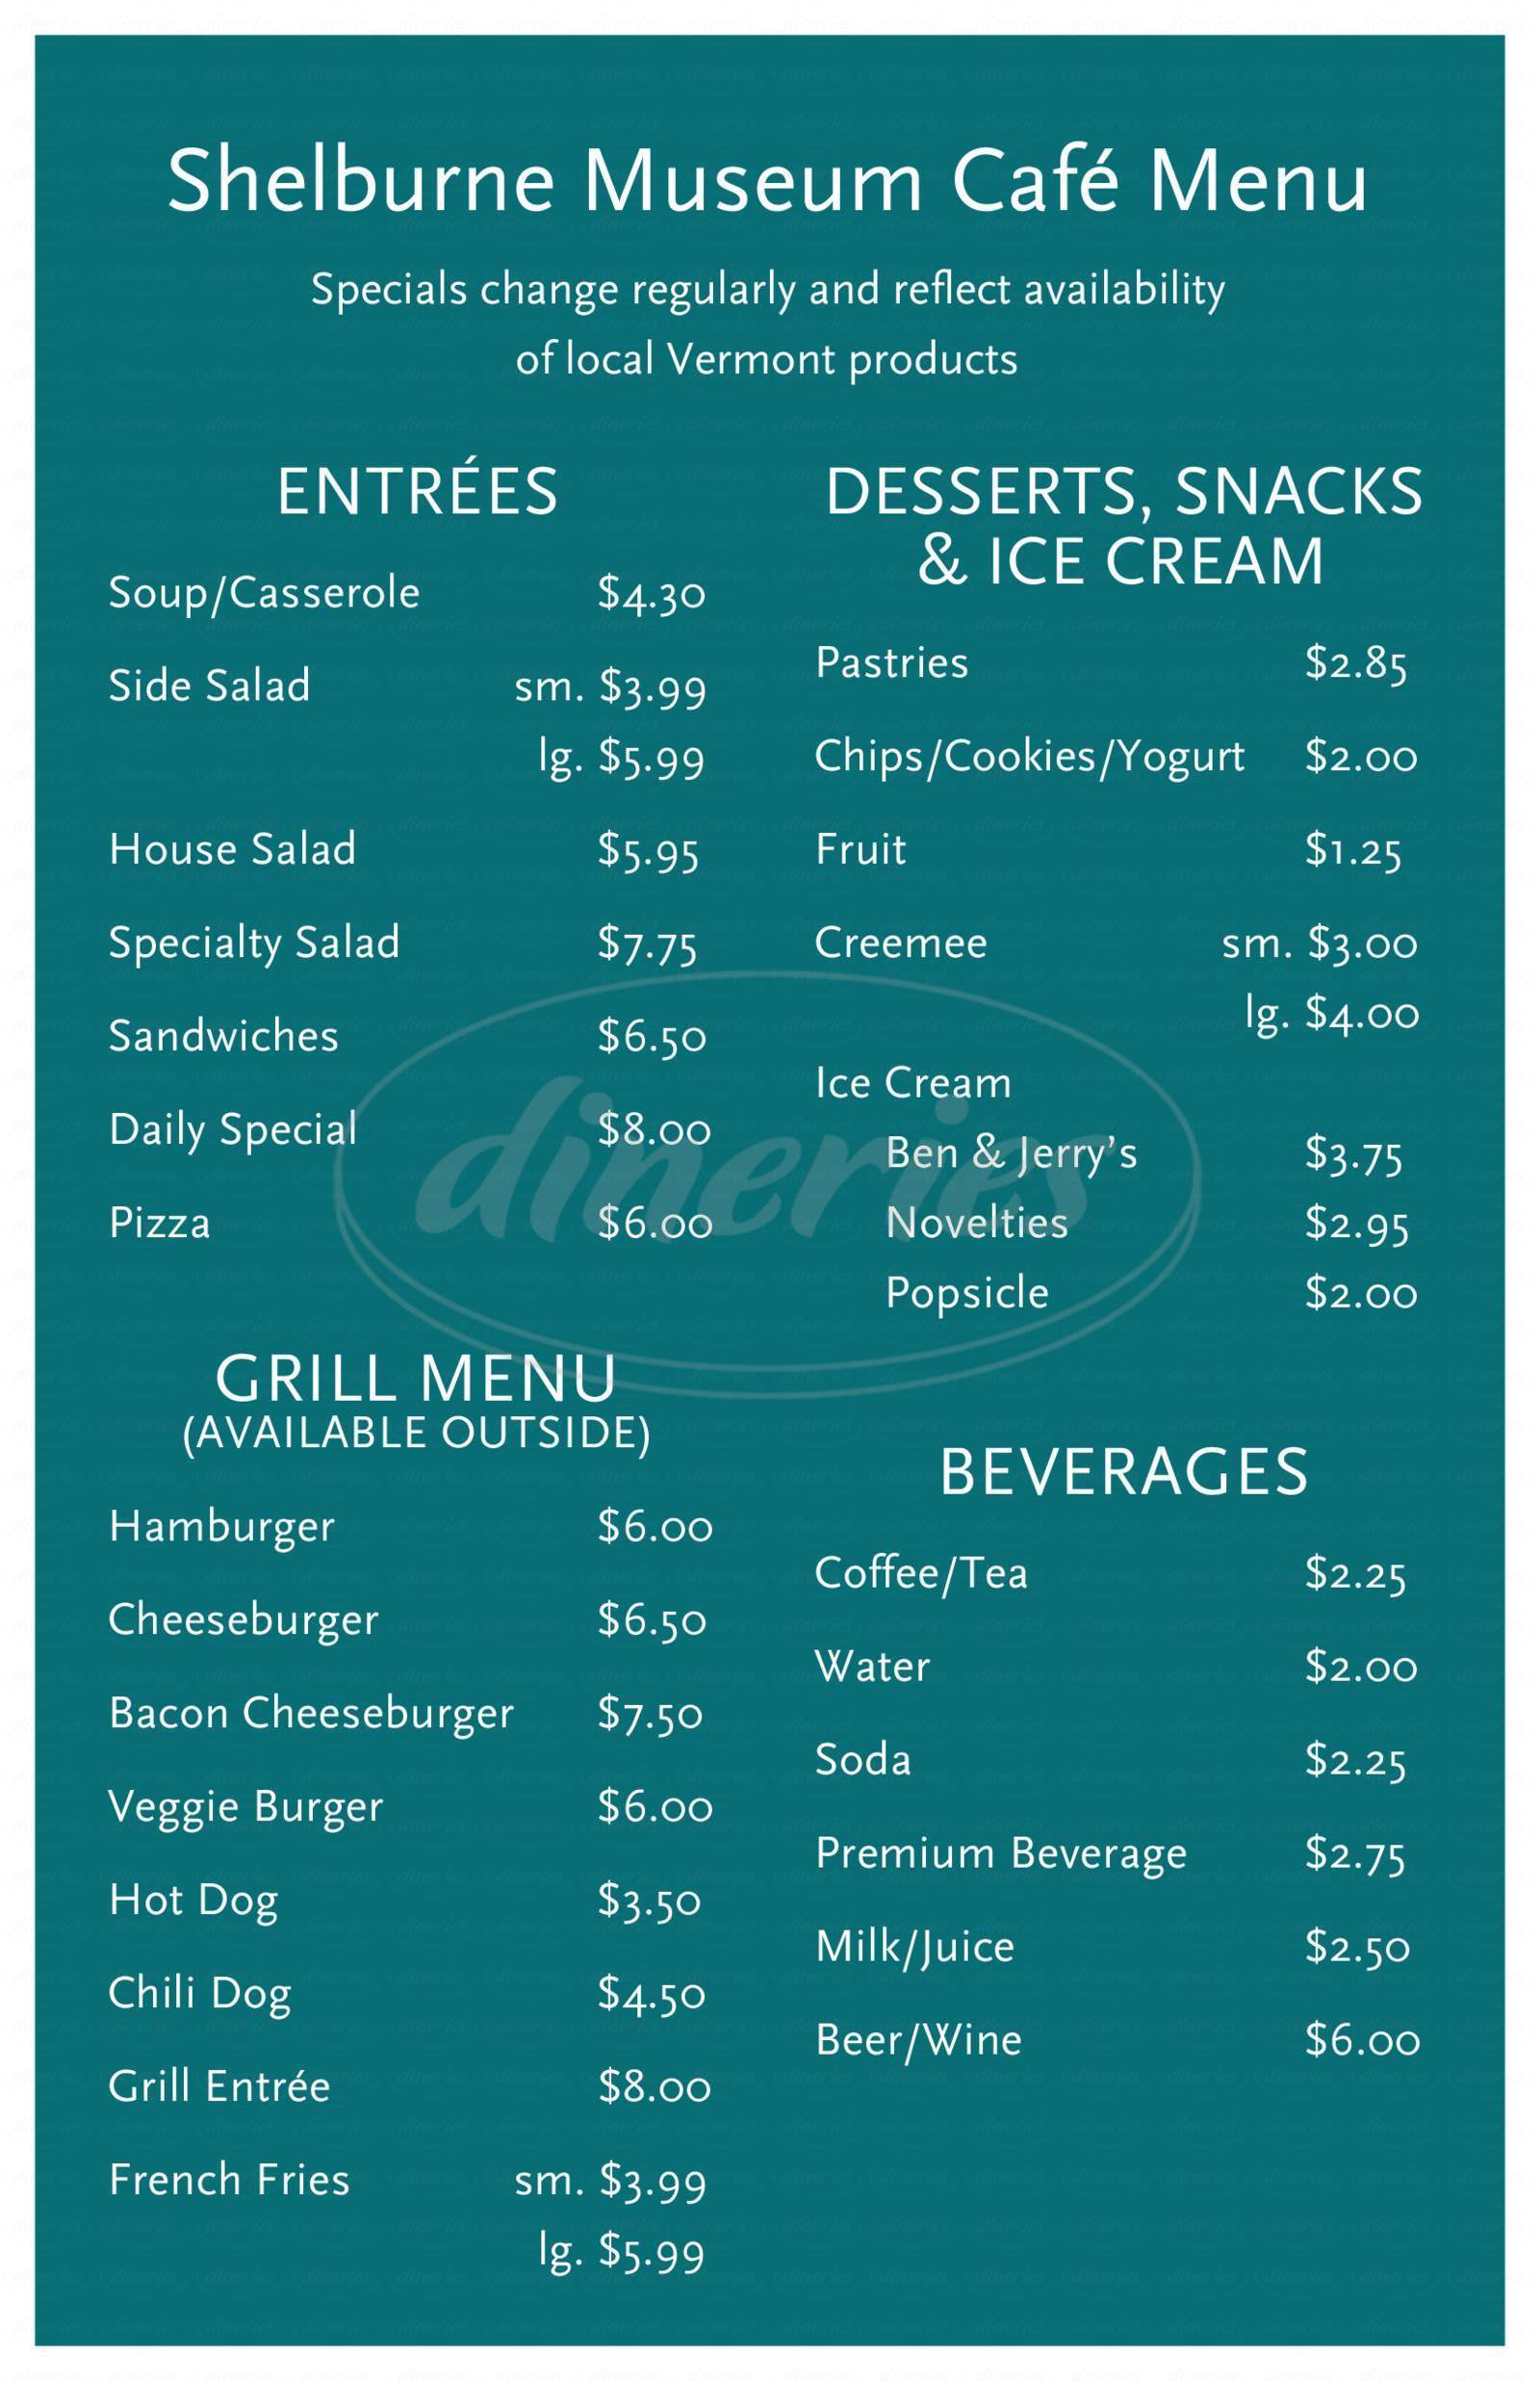 menu for Shelburne Museum Cafe